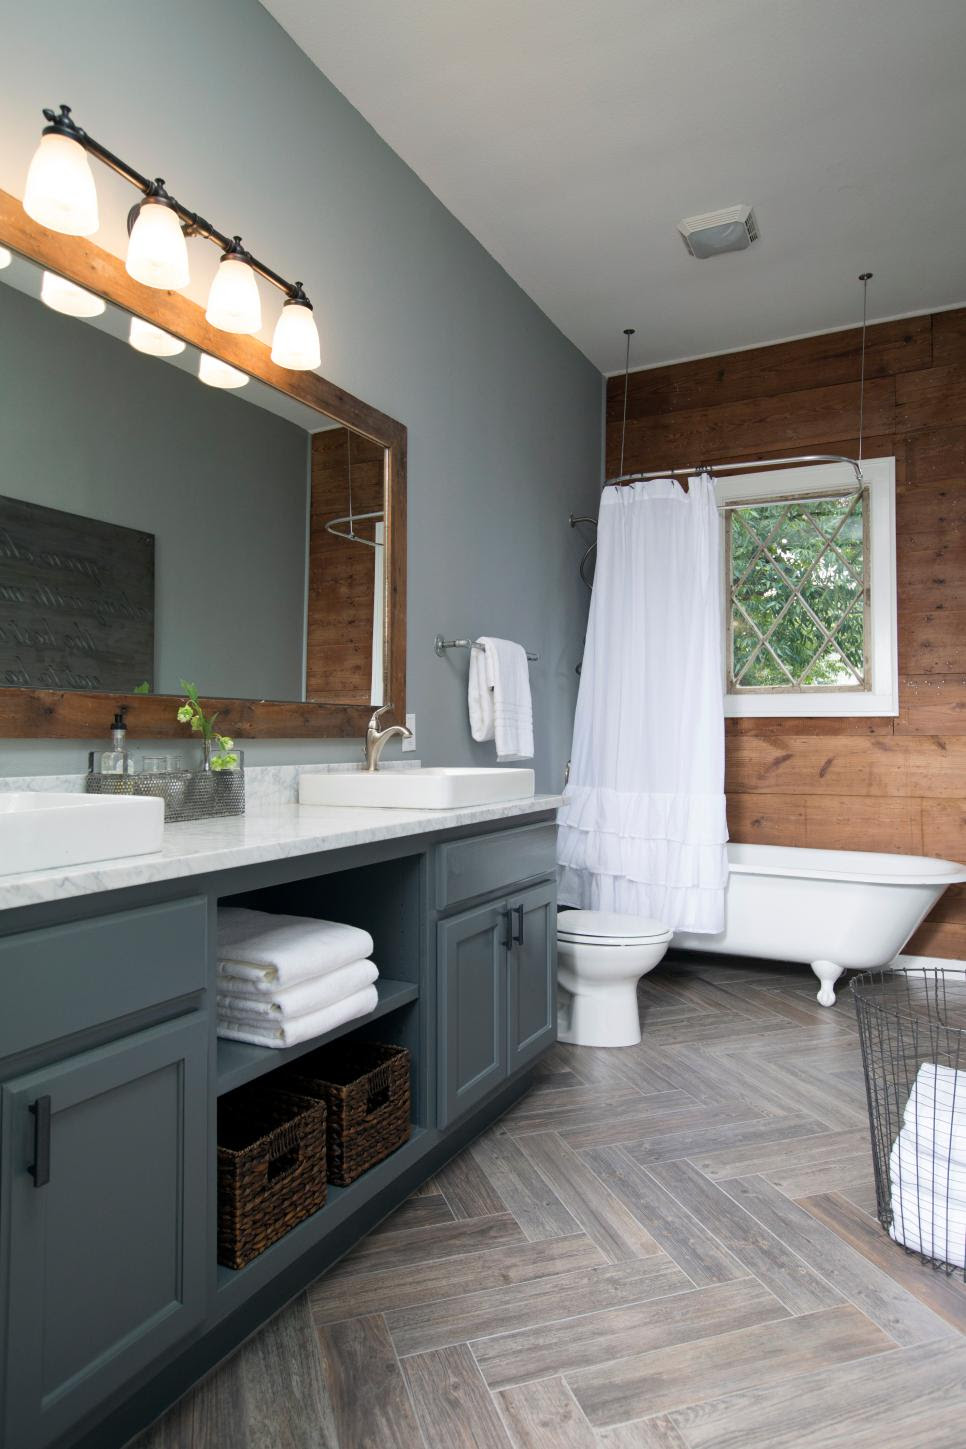 Top 10 Fixer Upper Bathrooms - Daily Dose of Style